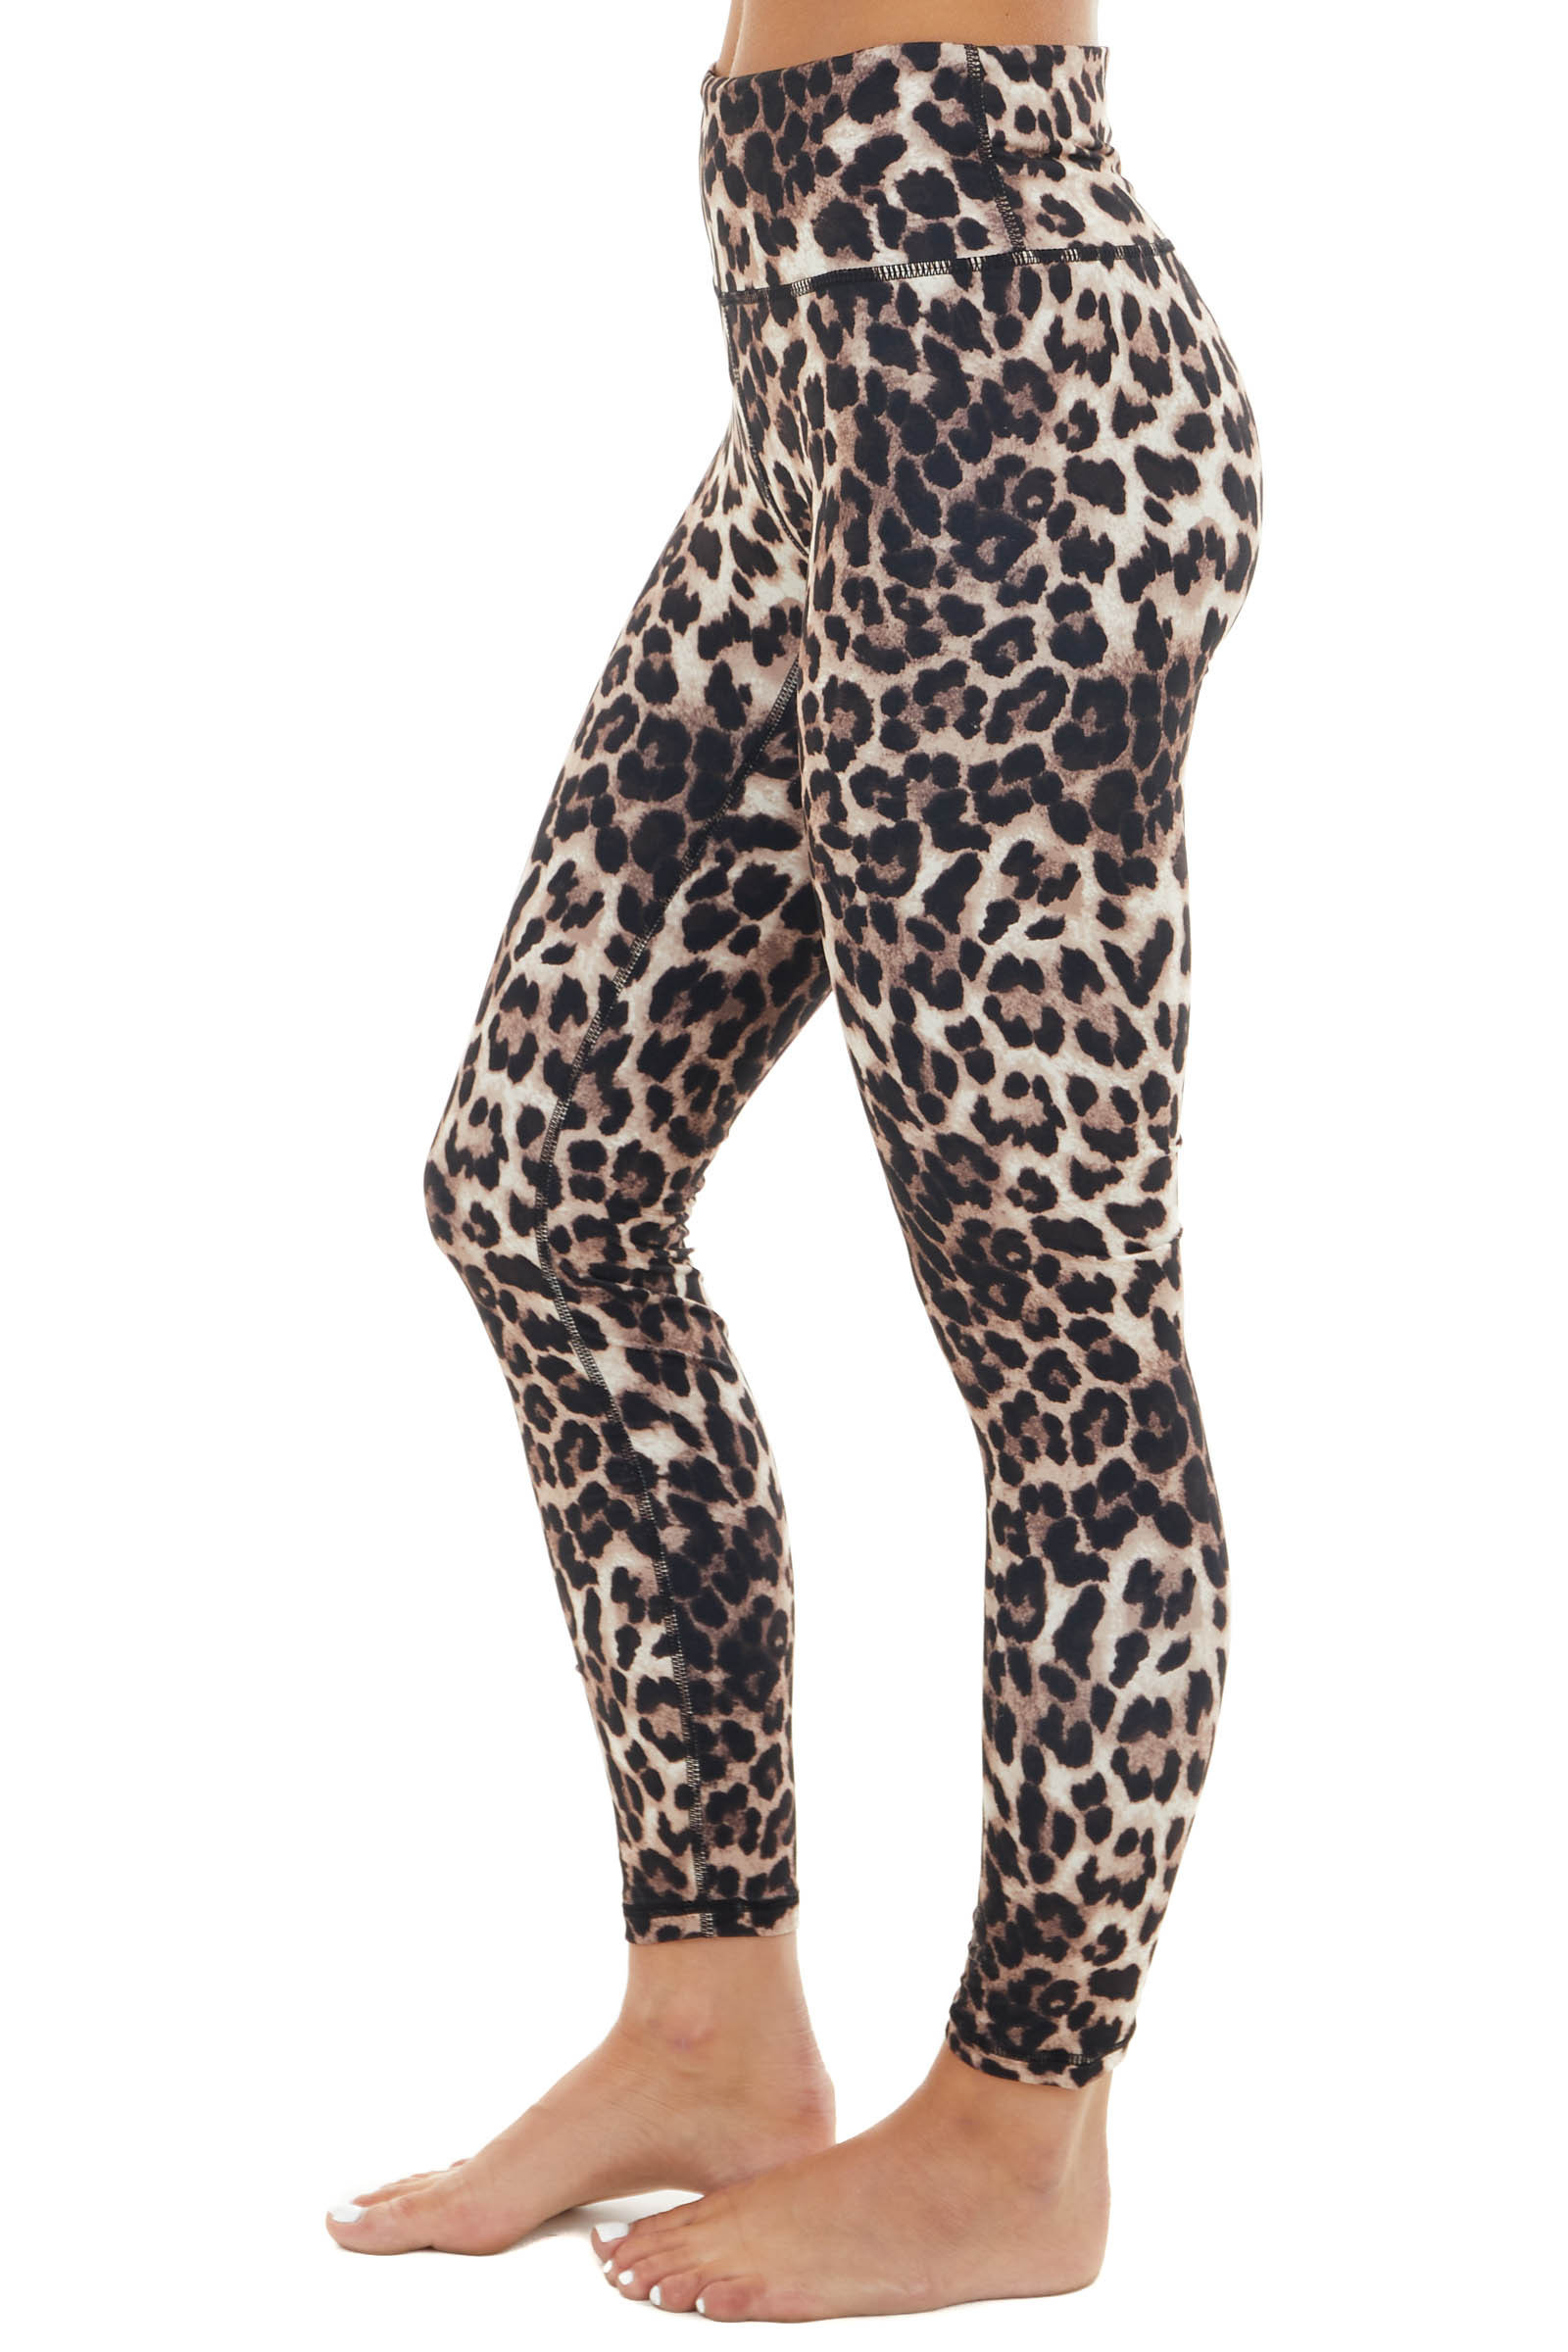 Taupe and Latte Leopard Print Stretchy Knit Leggings